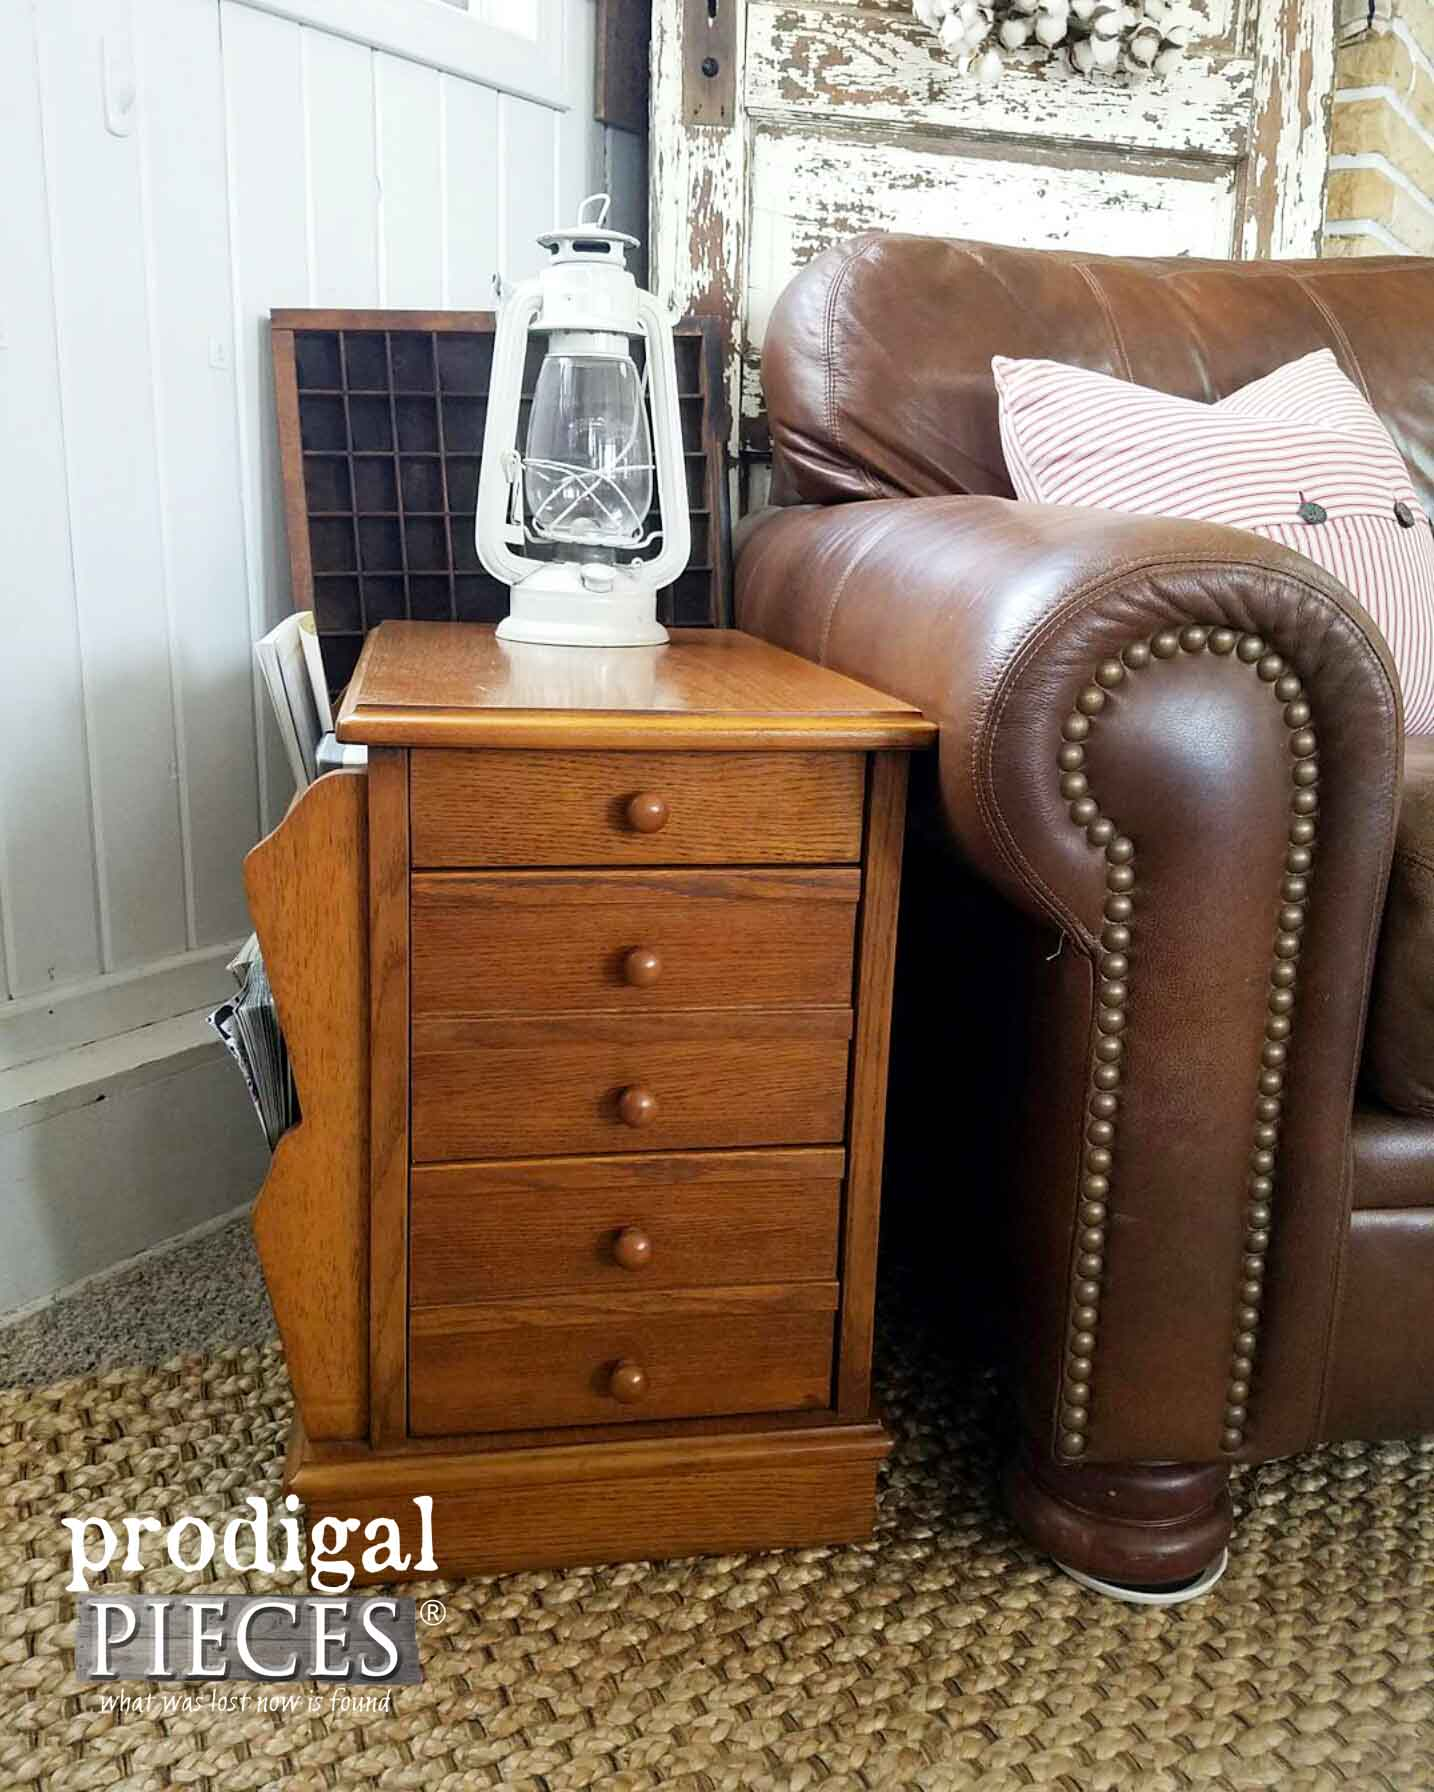 Sewing table with vintage chic vibe prodigal pieces side table before vintage chic makeover by prodigal pieces prodigalpieces watchthetrailerfo